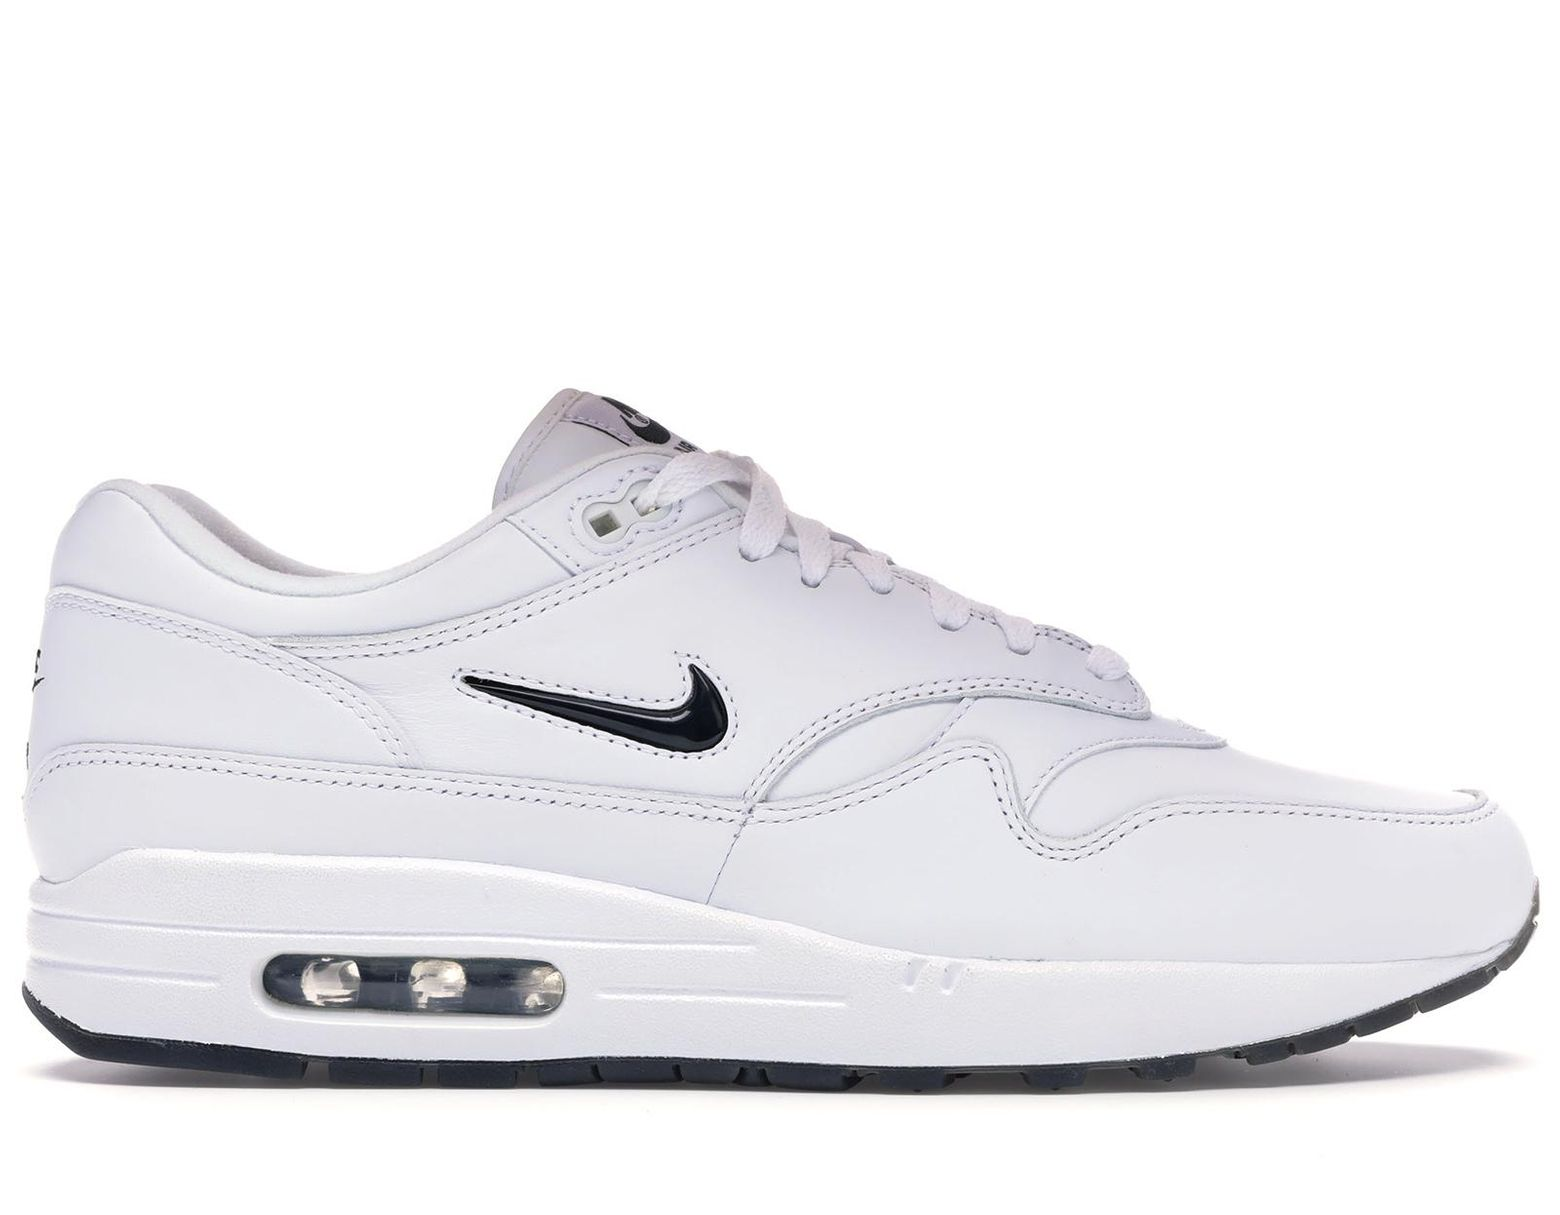 sneakers for cheap closer at differently Men's White Air Max 1 Jewel Black Diamond